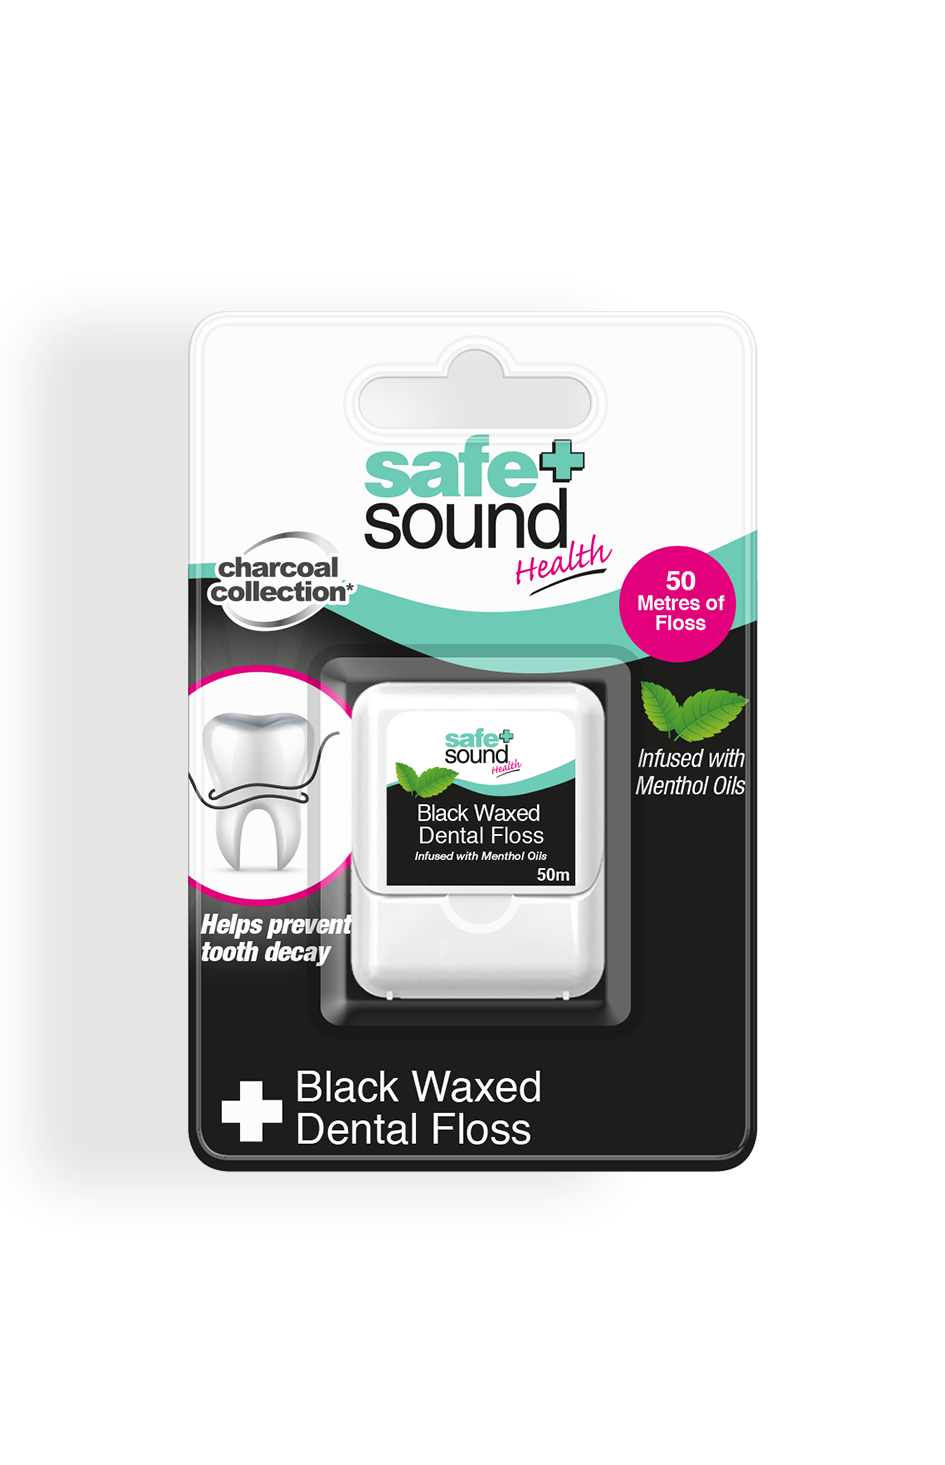 Safe and Sound Health Black Waxed Dental Floss